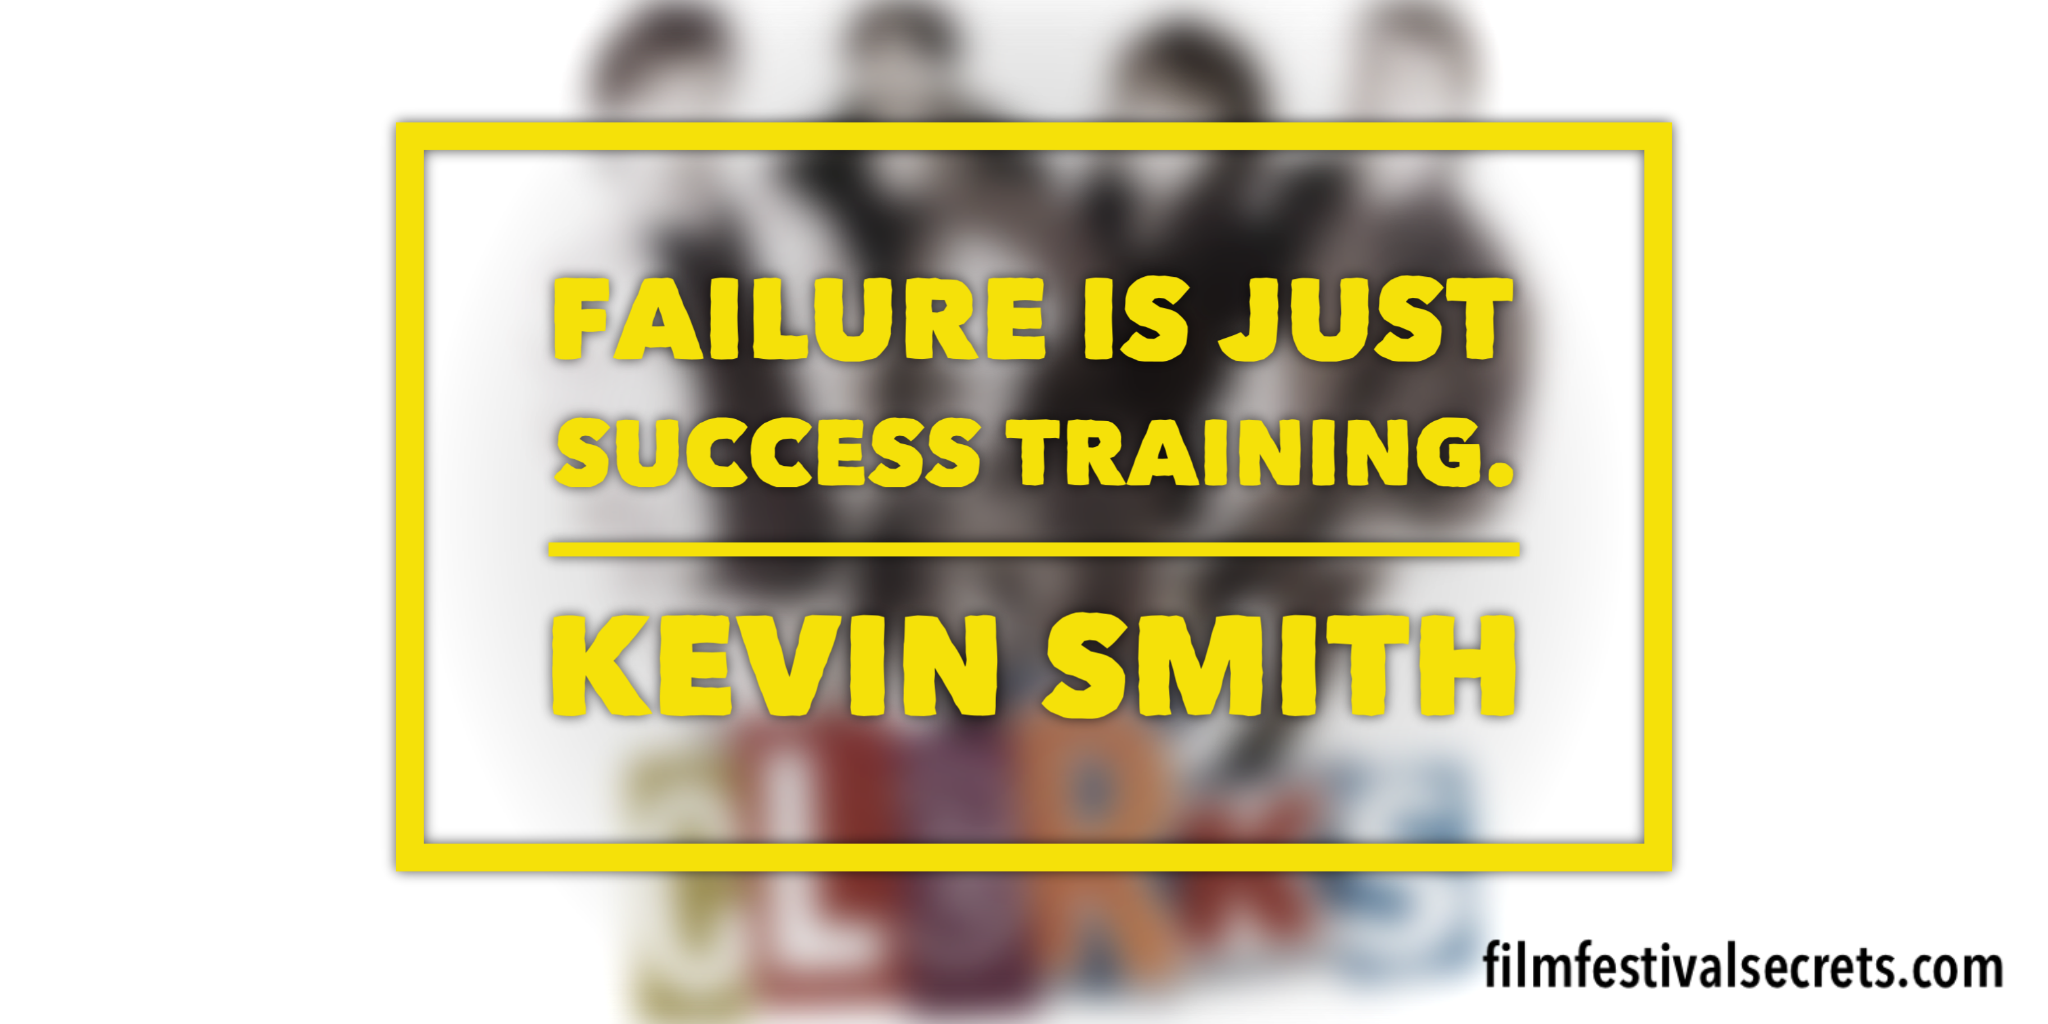 Kevin Smith quote.